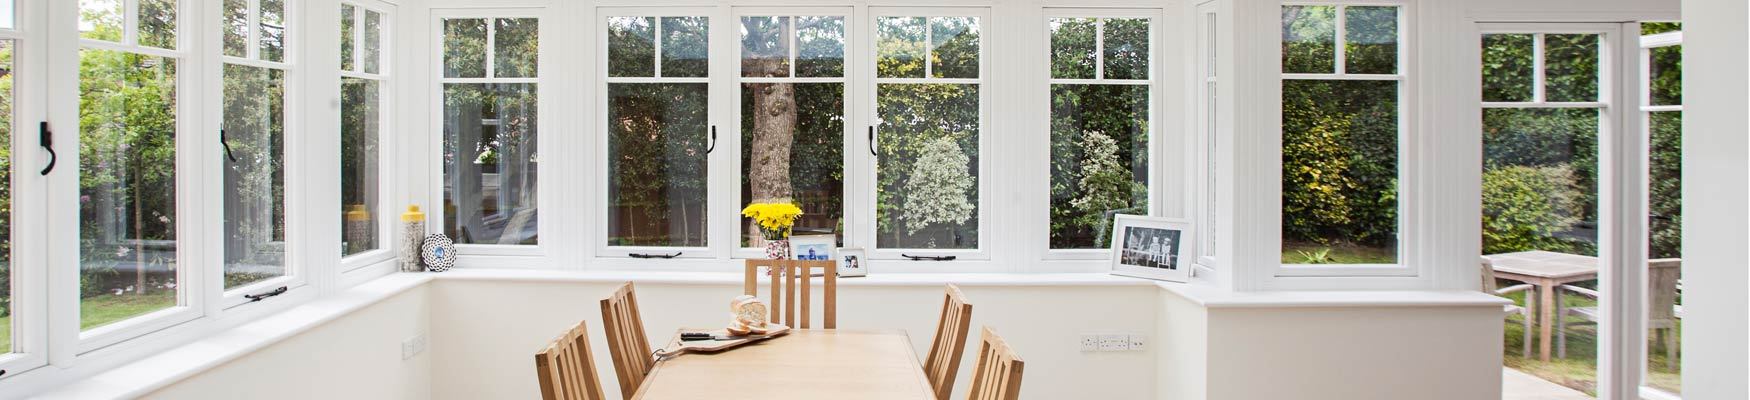 home-slider-daytime-conservatory-table